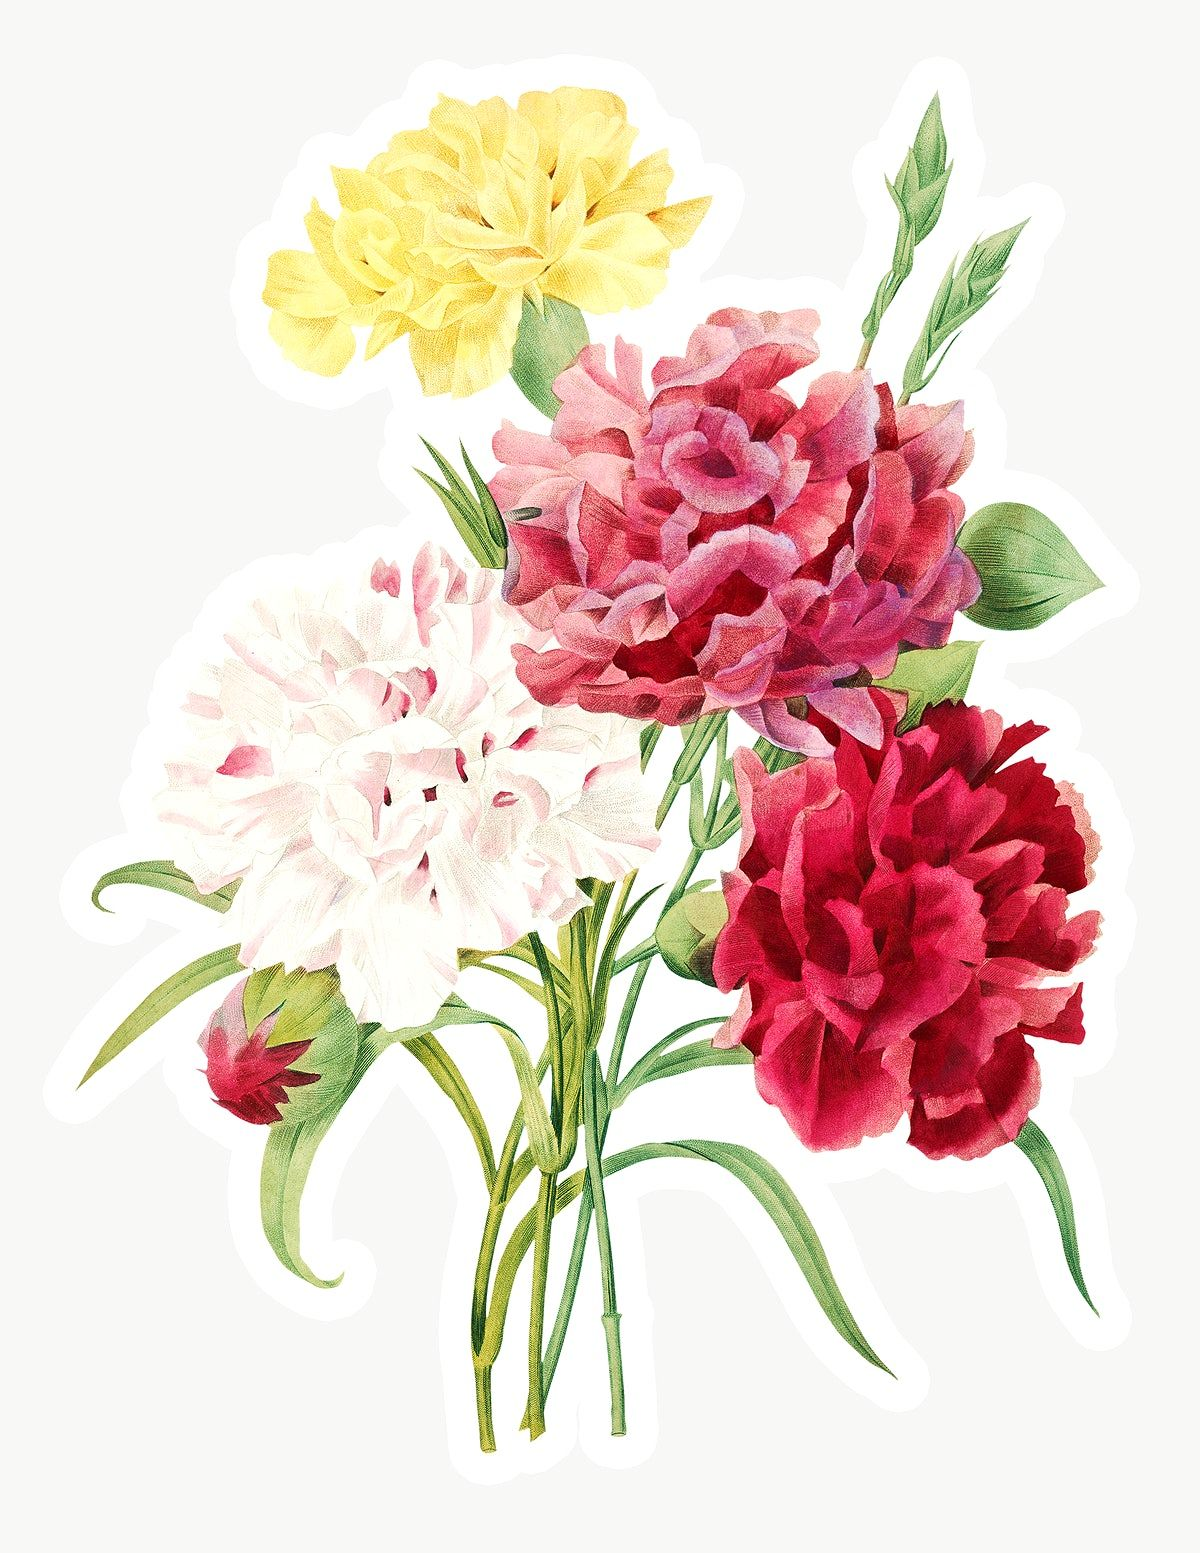 Pin By Rawpixel On Textiles In 2020 Watercolor Flowers Carnation Flower Flowers